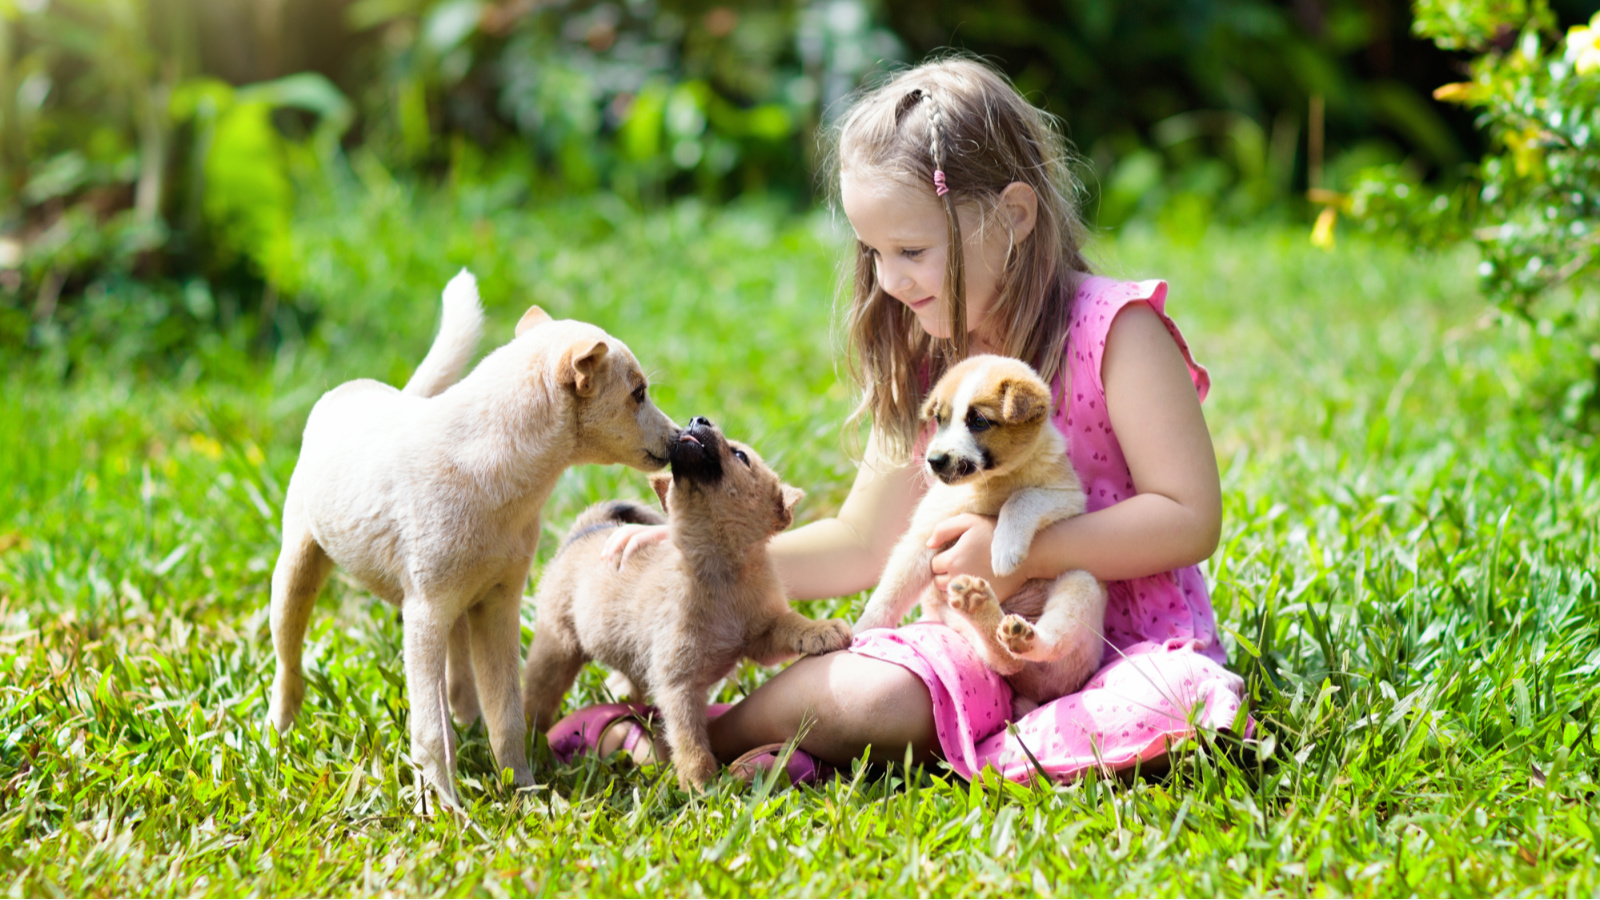 Pet-poo-composter-girl-with-puppies-cute